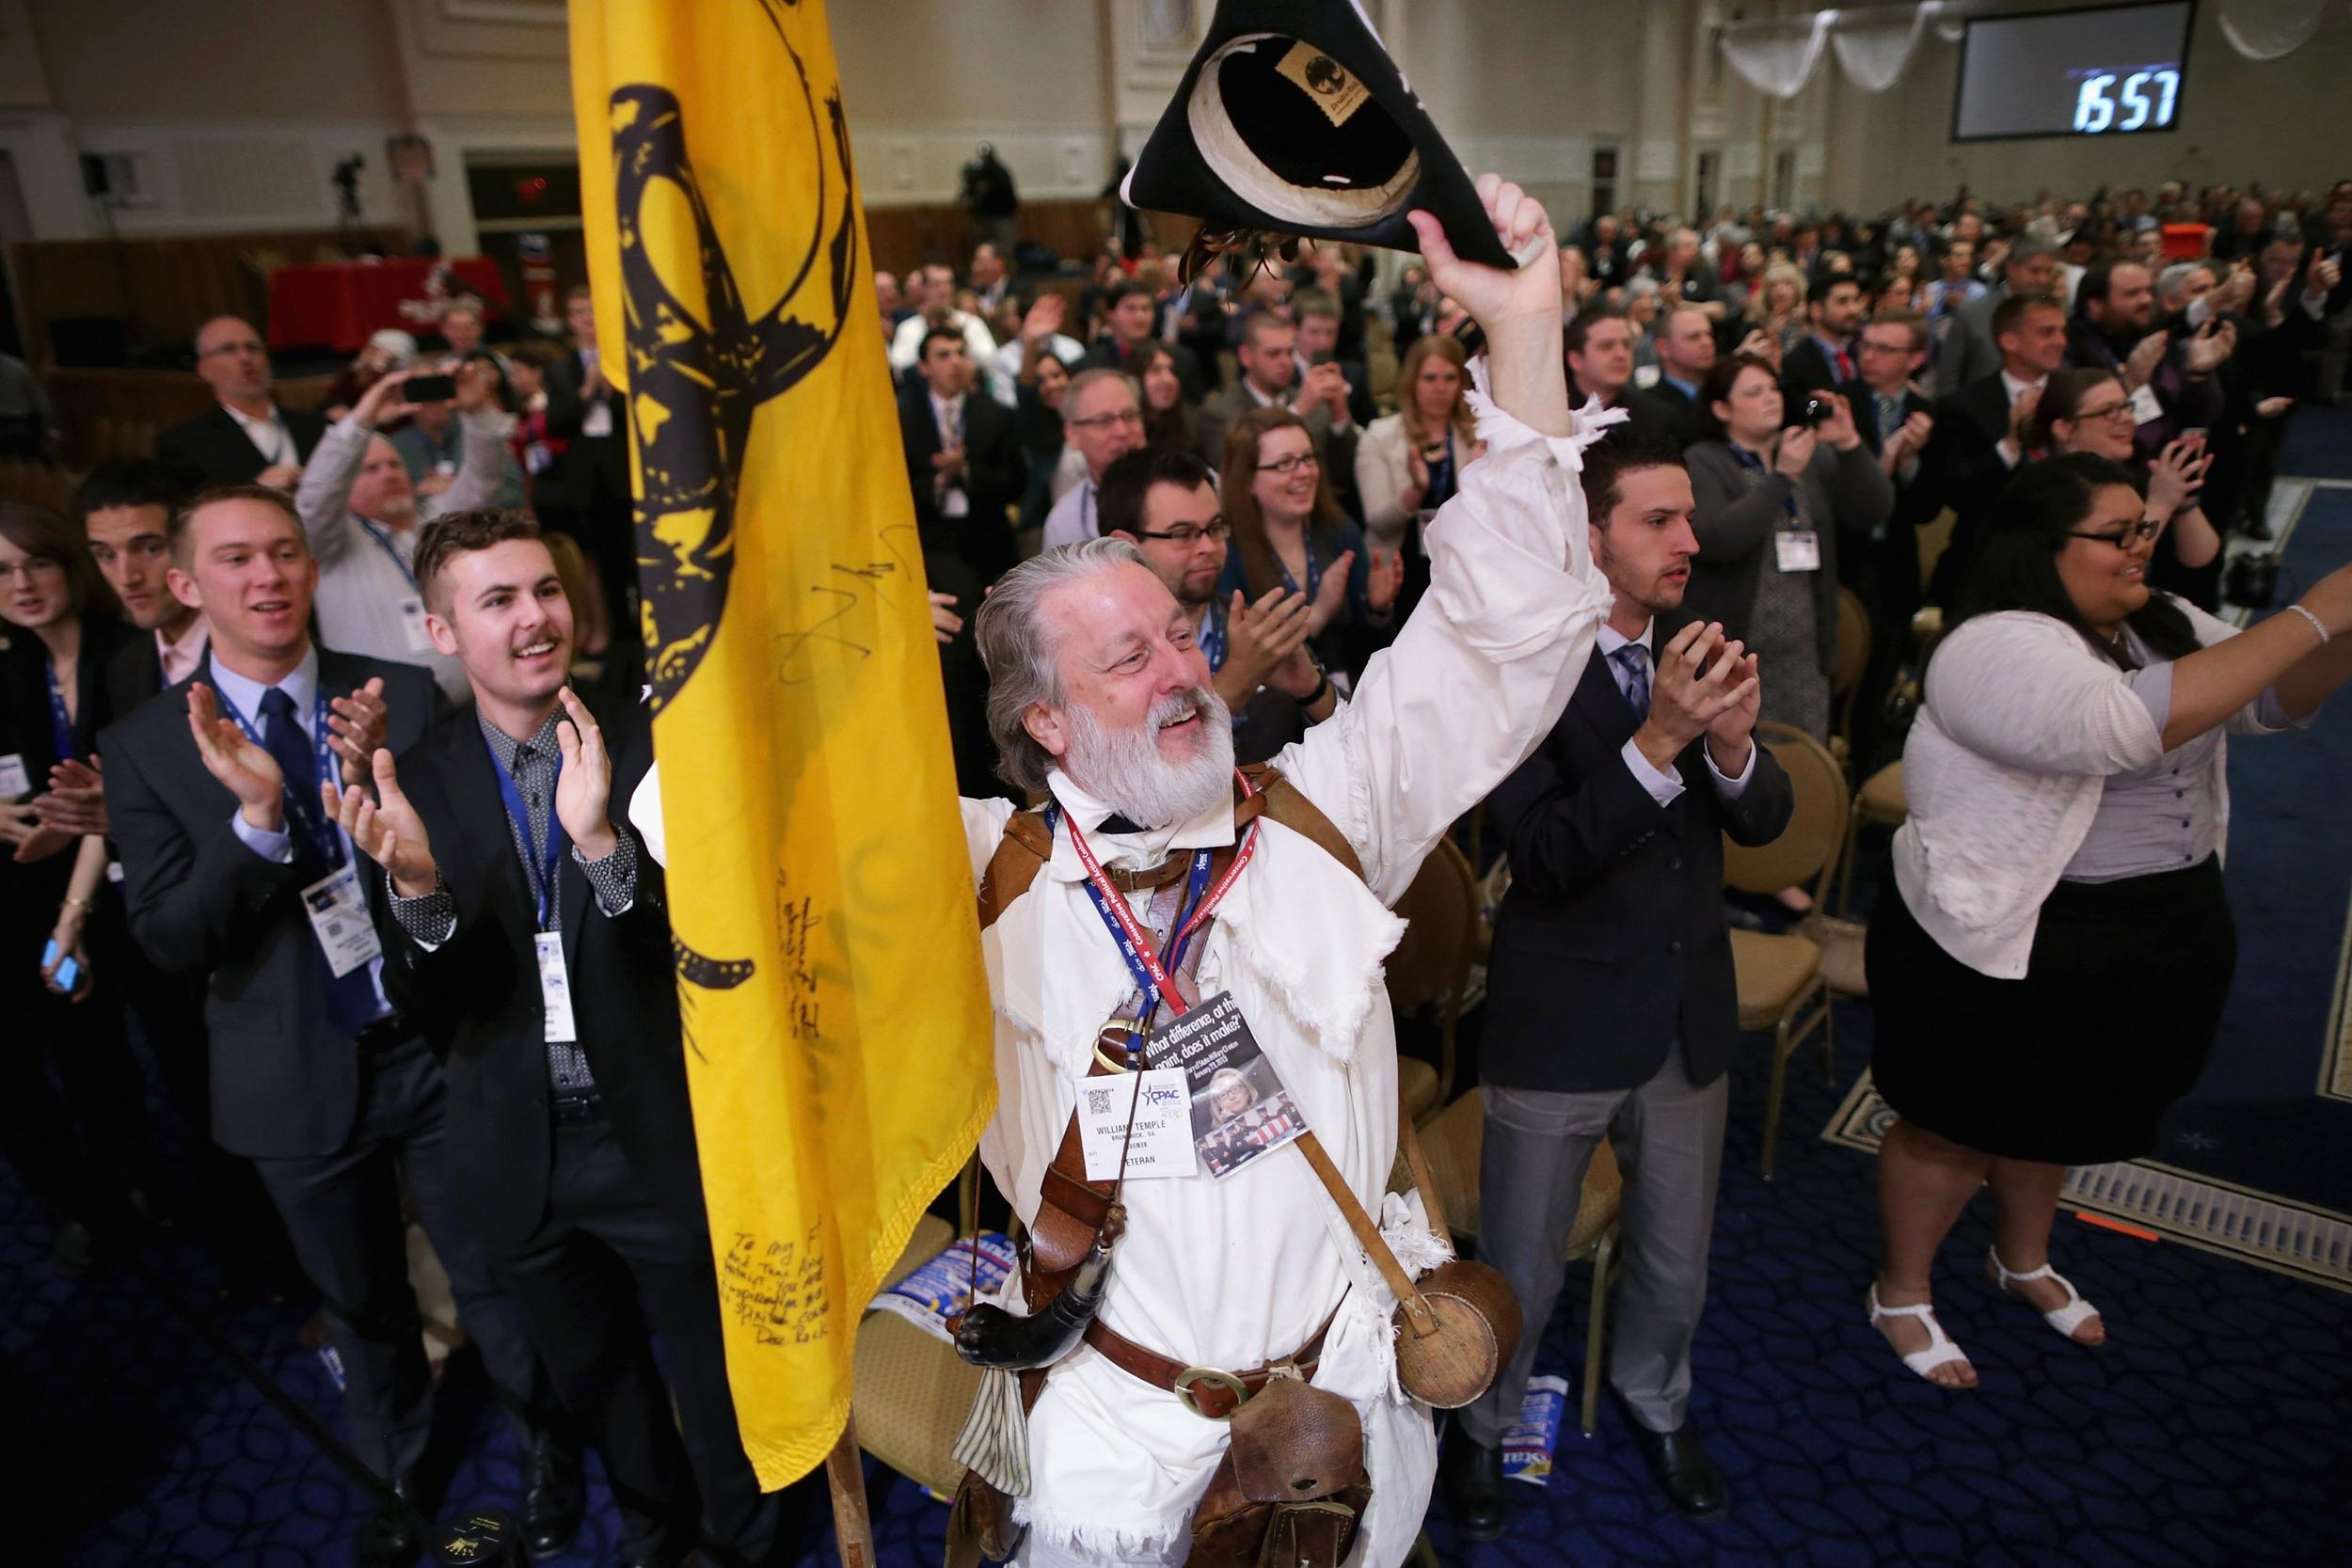 Image: Annual Conservative Political Action Conference (CPAC) Held In D.C.